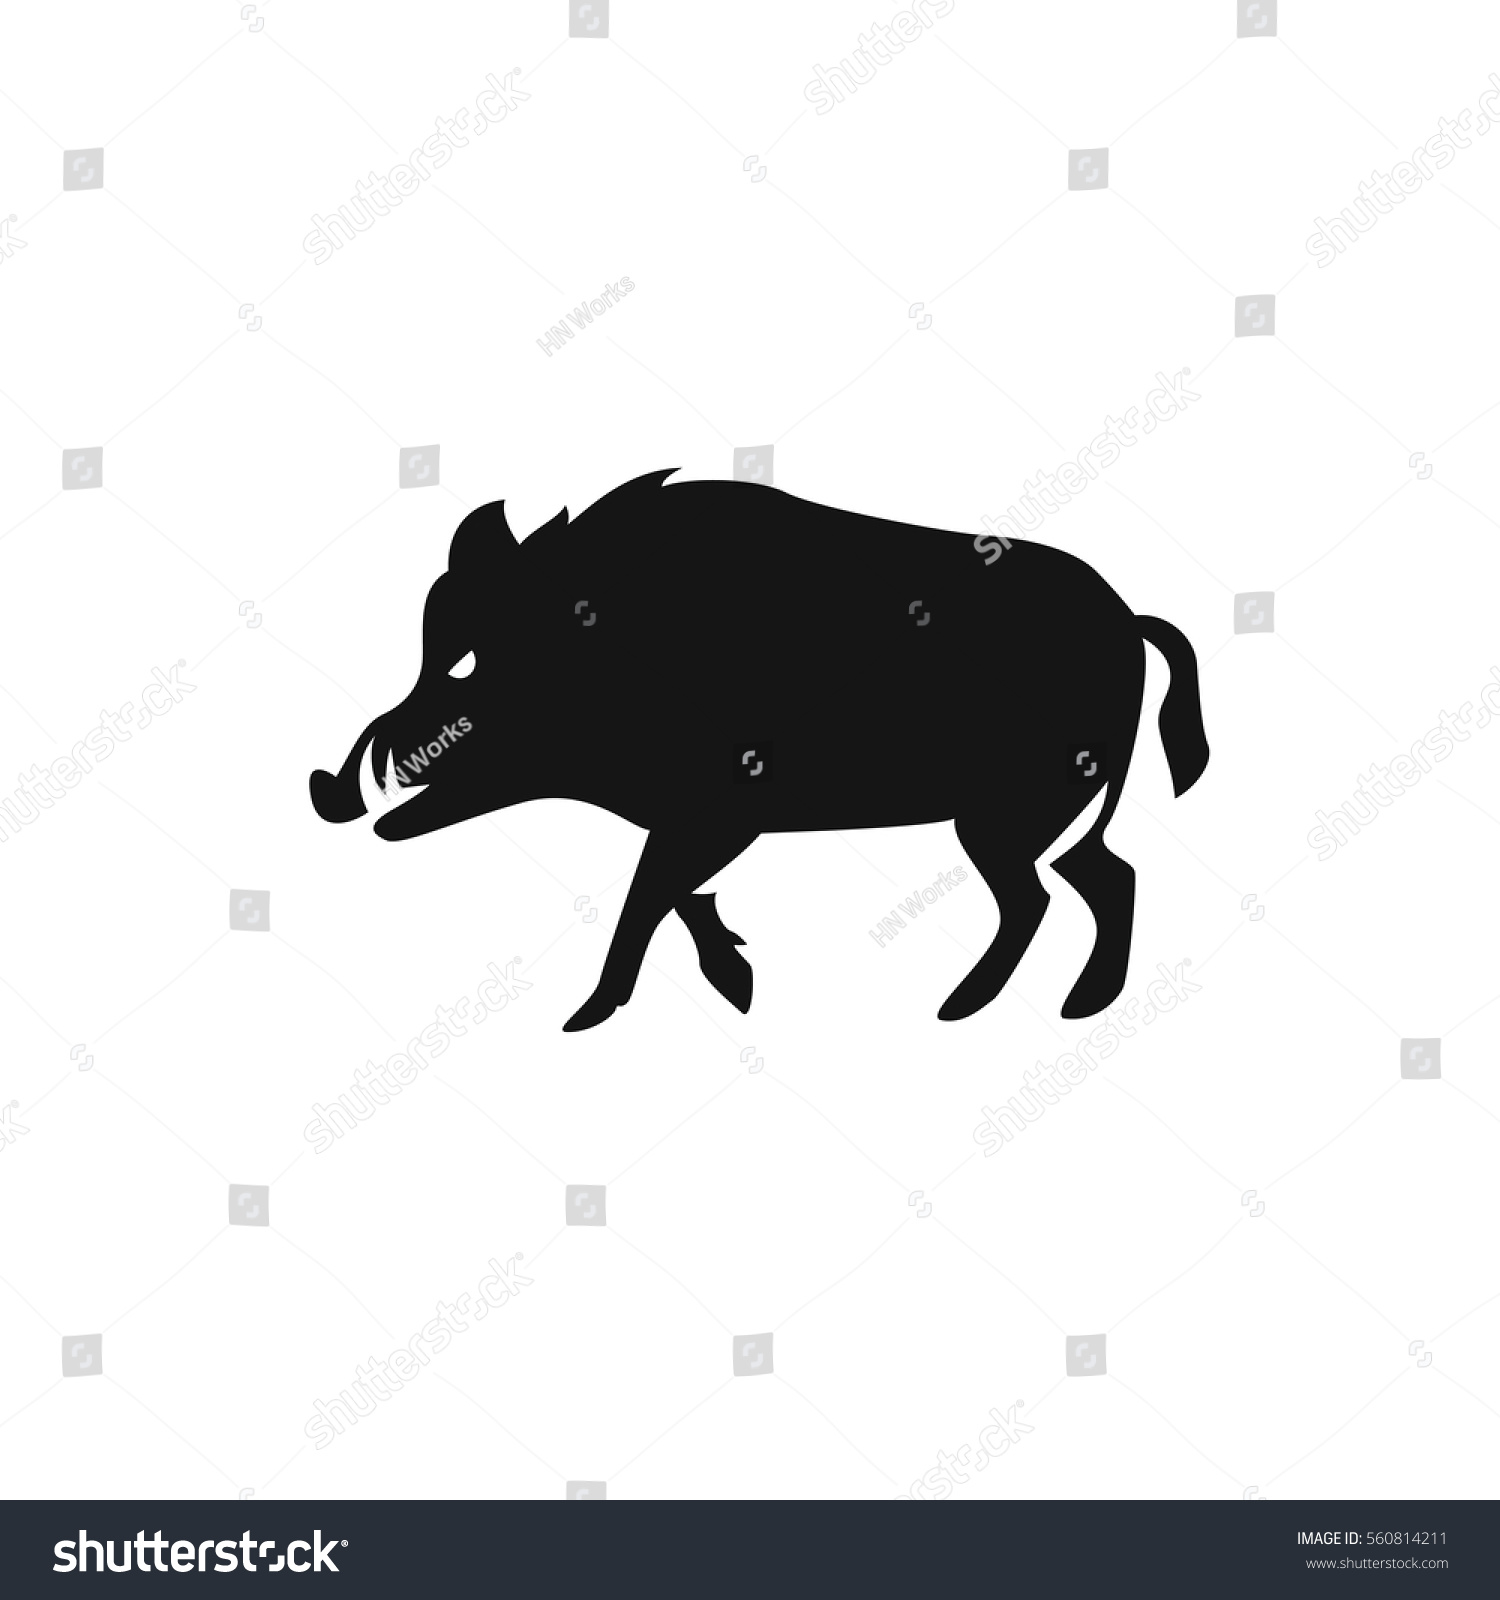 Hog Icon Illustration Isolated Vector Sign Stock Vector 560814211